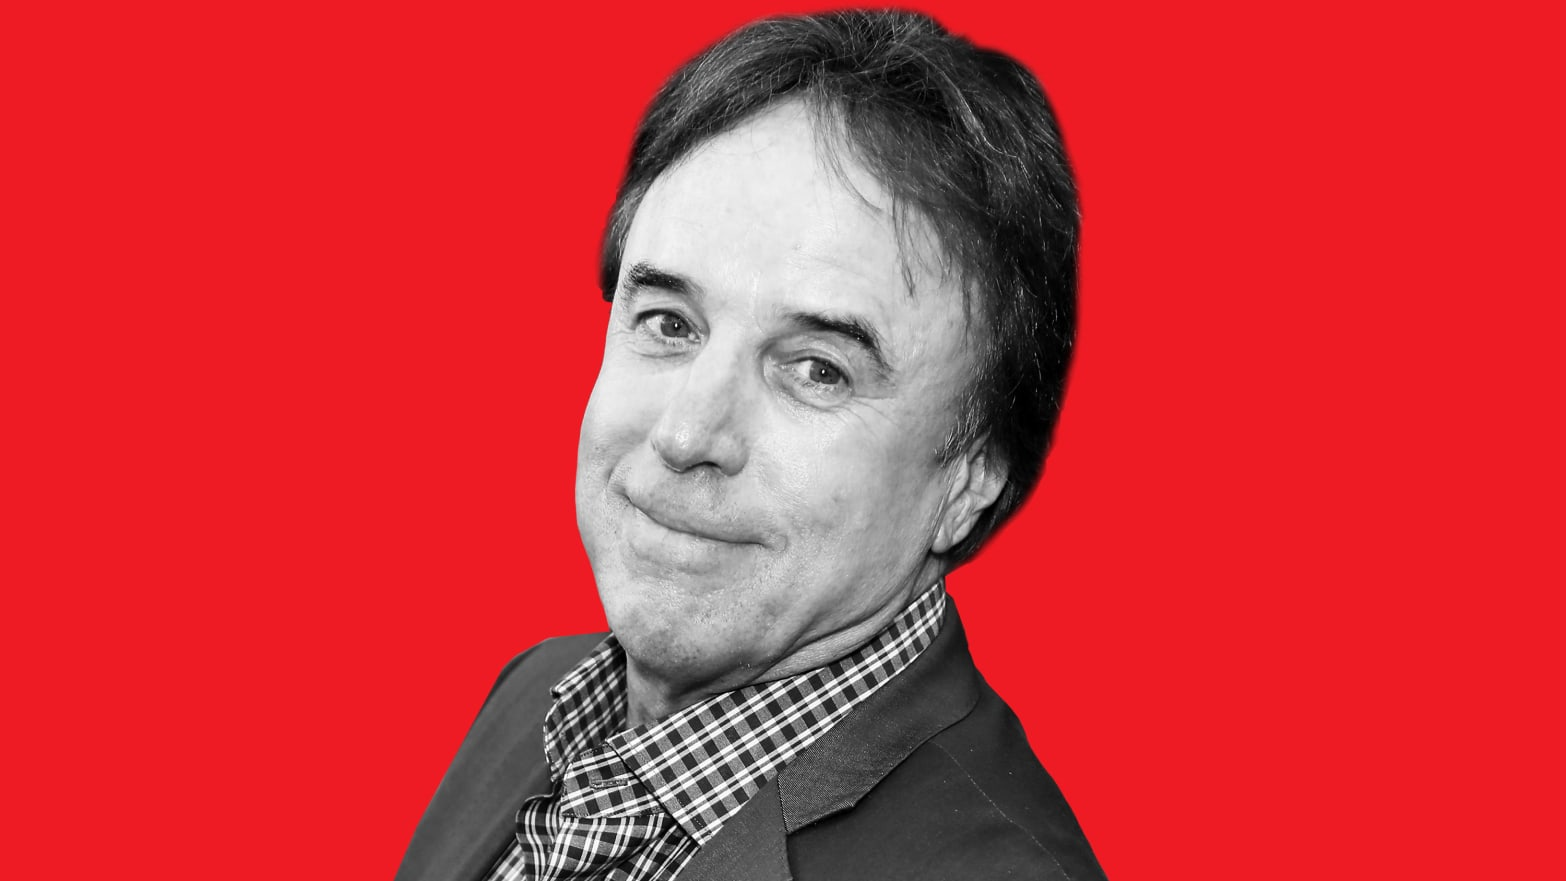 Kevin Nealon Talks Al Franken, Chris Farley and Getting 'Forced Out' of SNL on 'The Last Laugh' Podcast